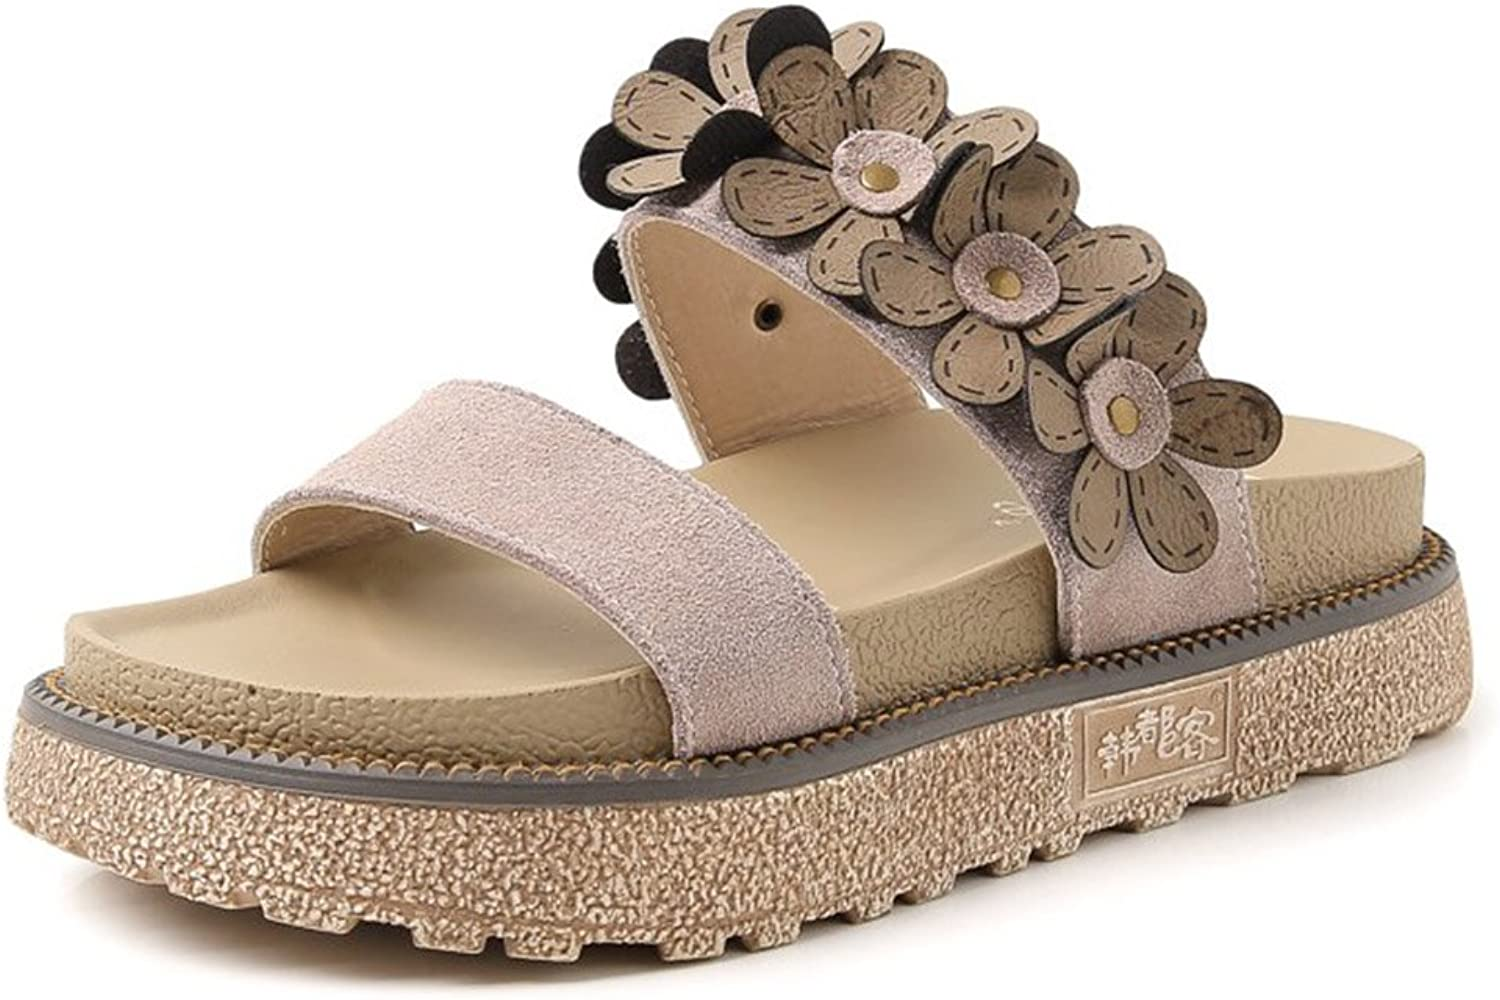 Kyle Walsh Pa Women Sandals-Casual Rome Flowers Platform Espadrille Slide Beach Pool Lounging Slipper Slip-On shoes